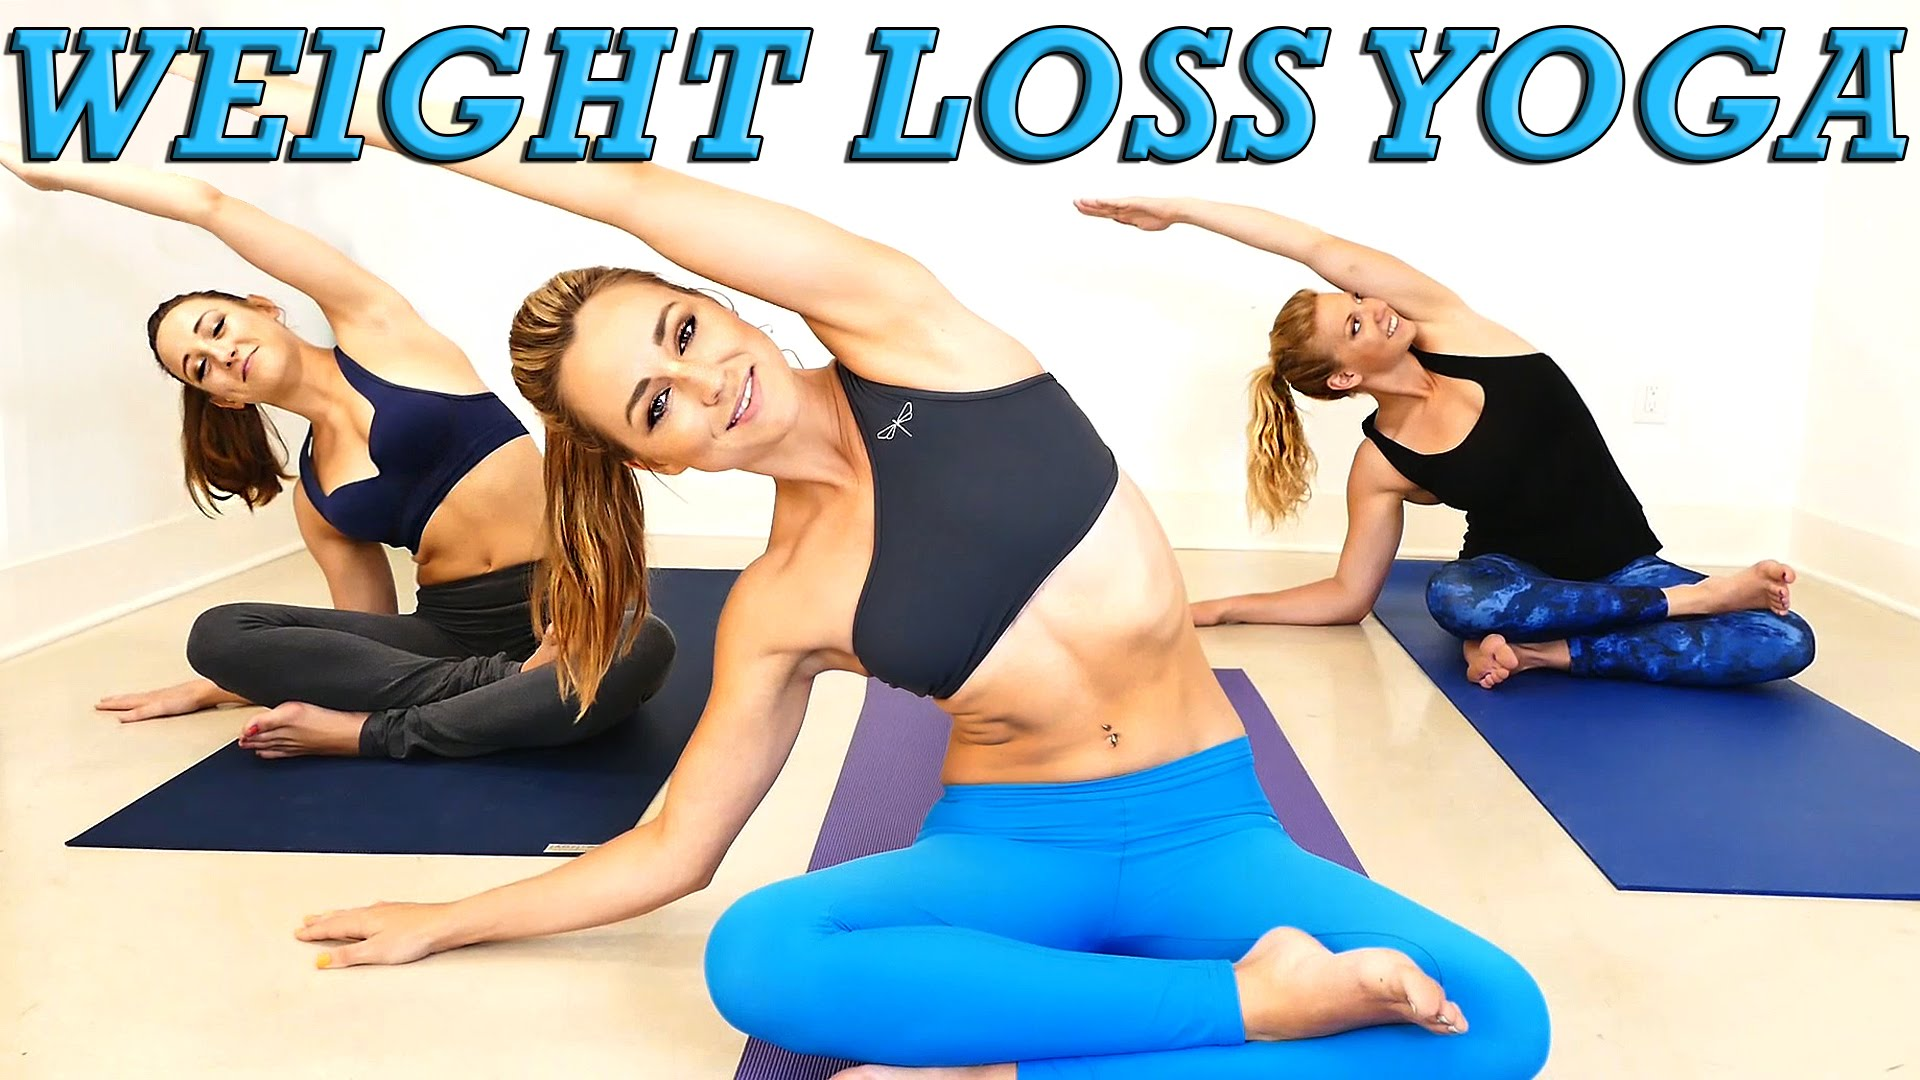 What are the best yoga poses for beginners to lose weight? 9